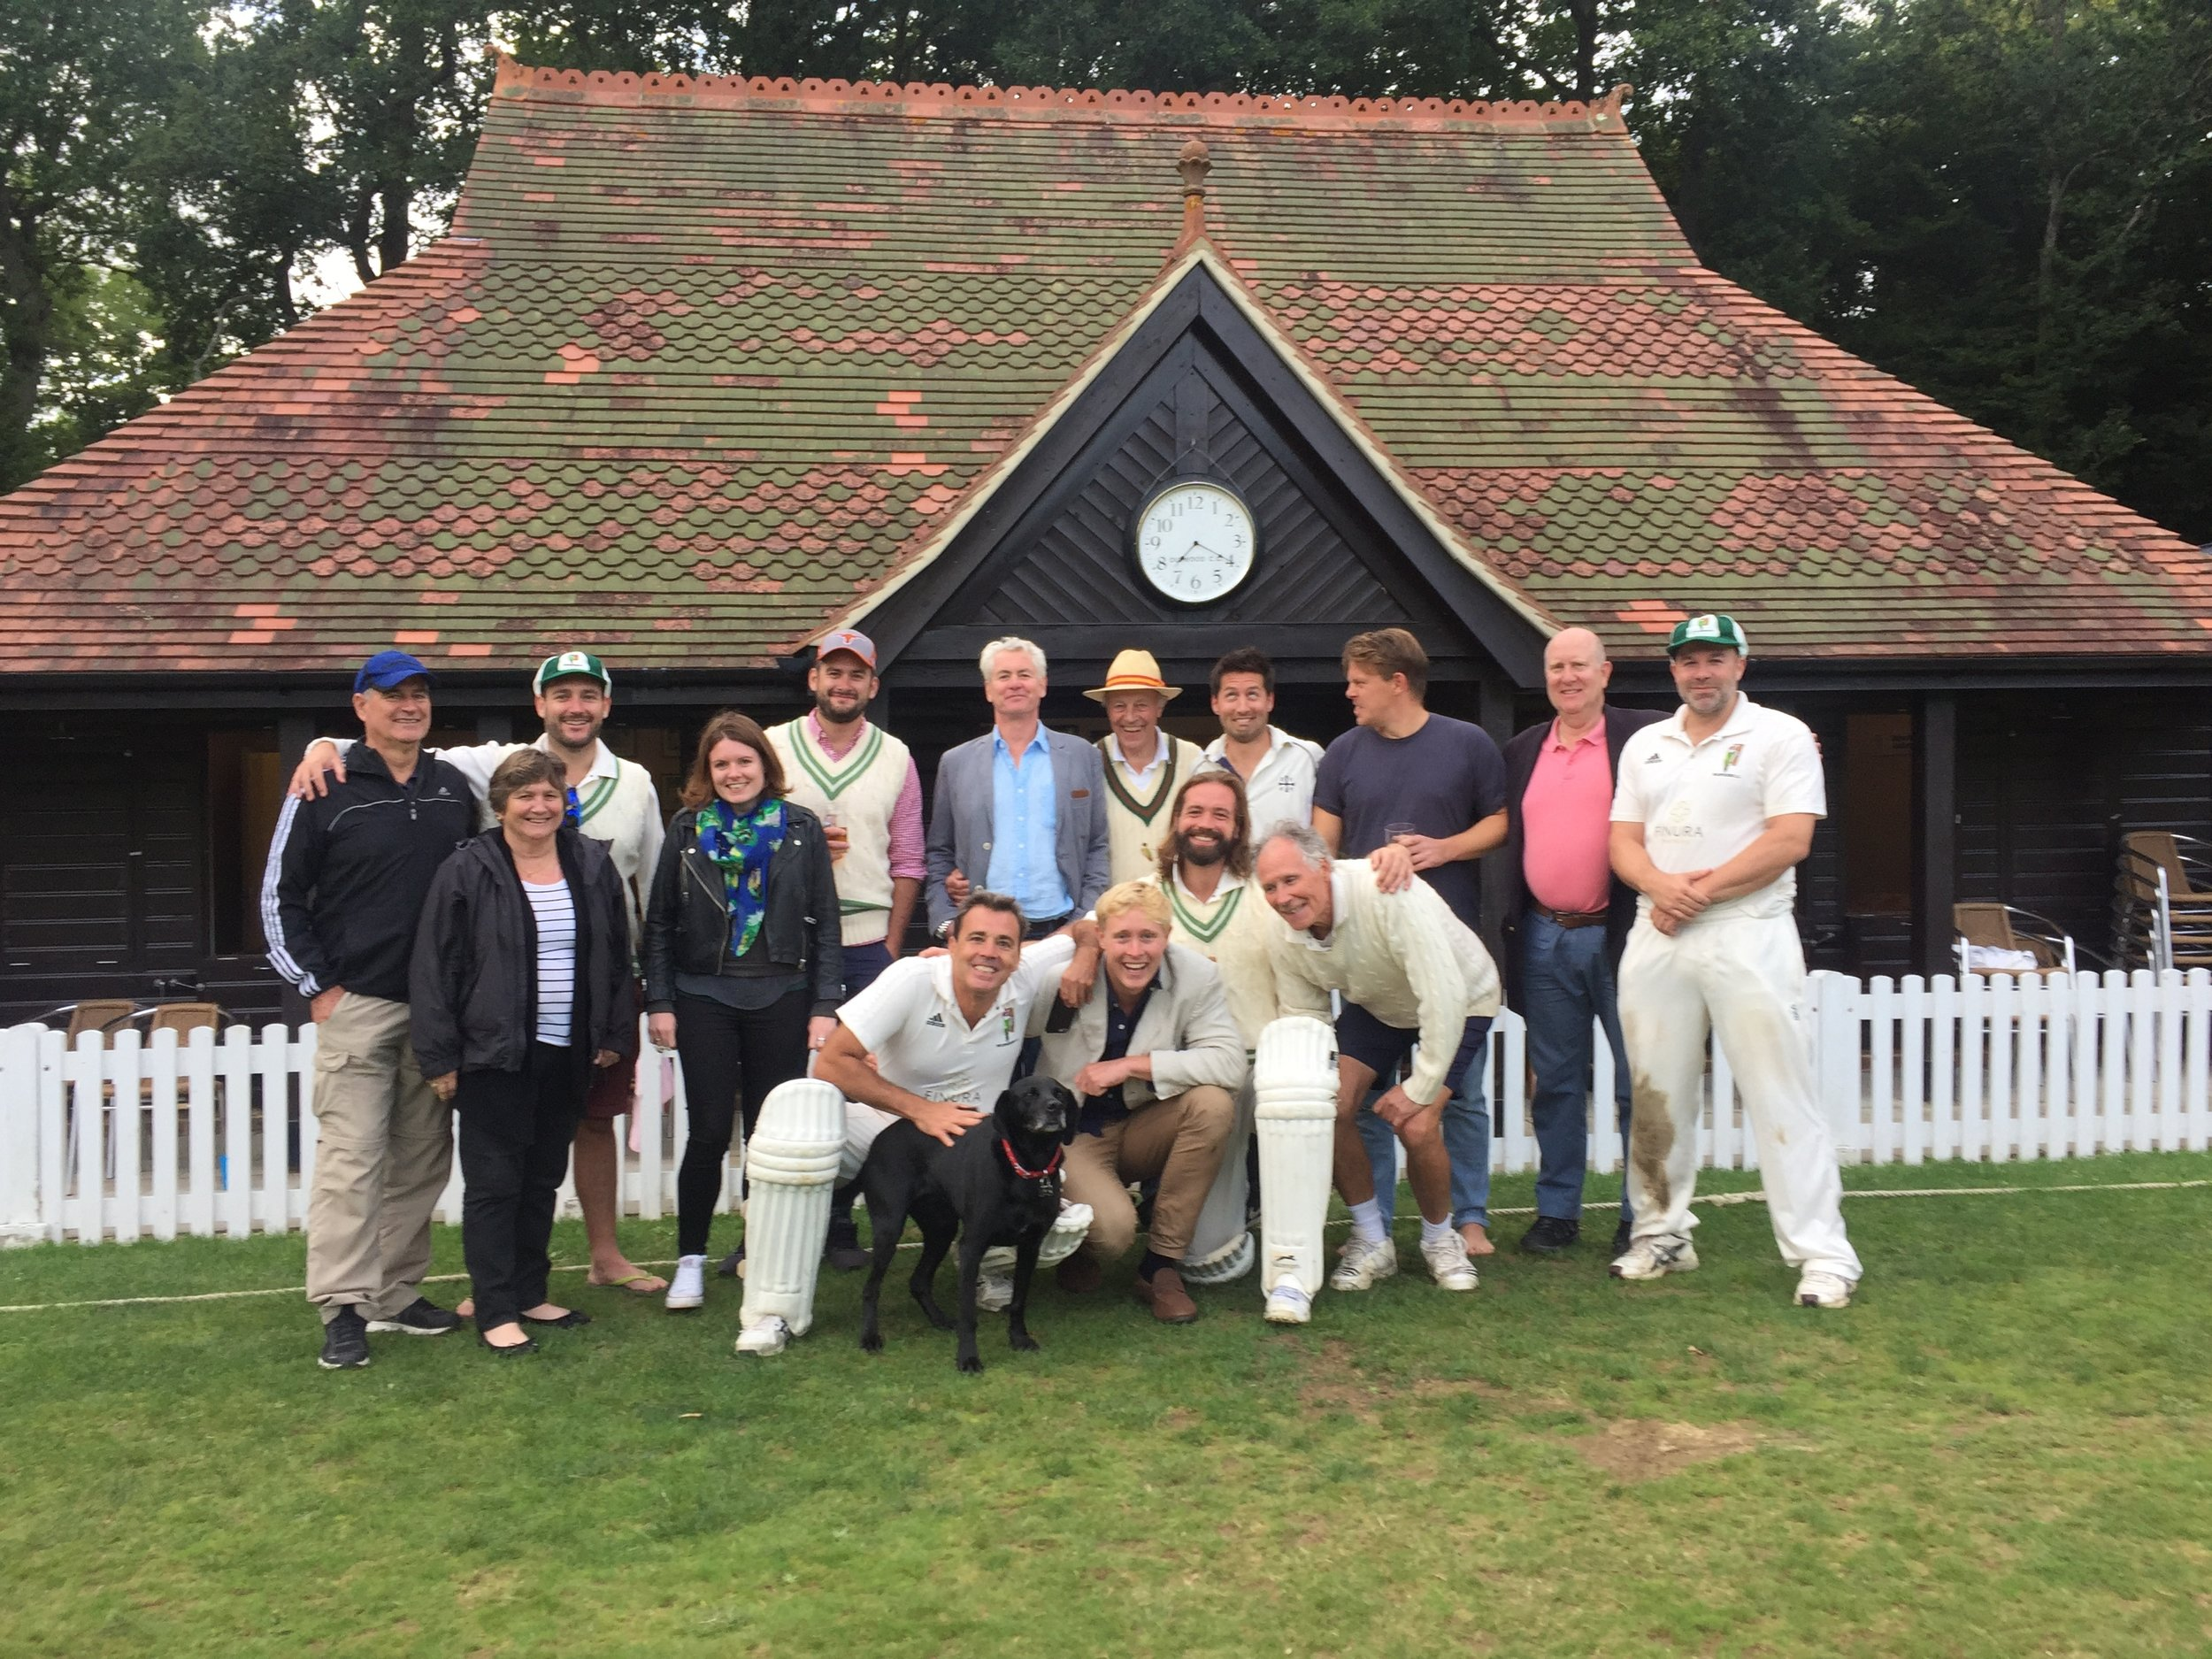 P eckers complete with SPs parents, Kiwi Horse and Cappy, Tamsin, and Jim the Umpire